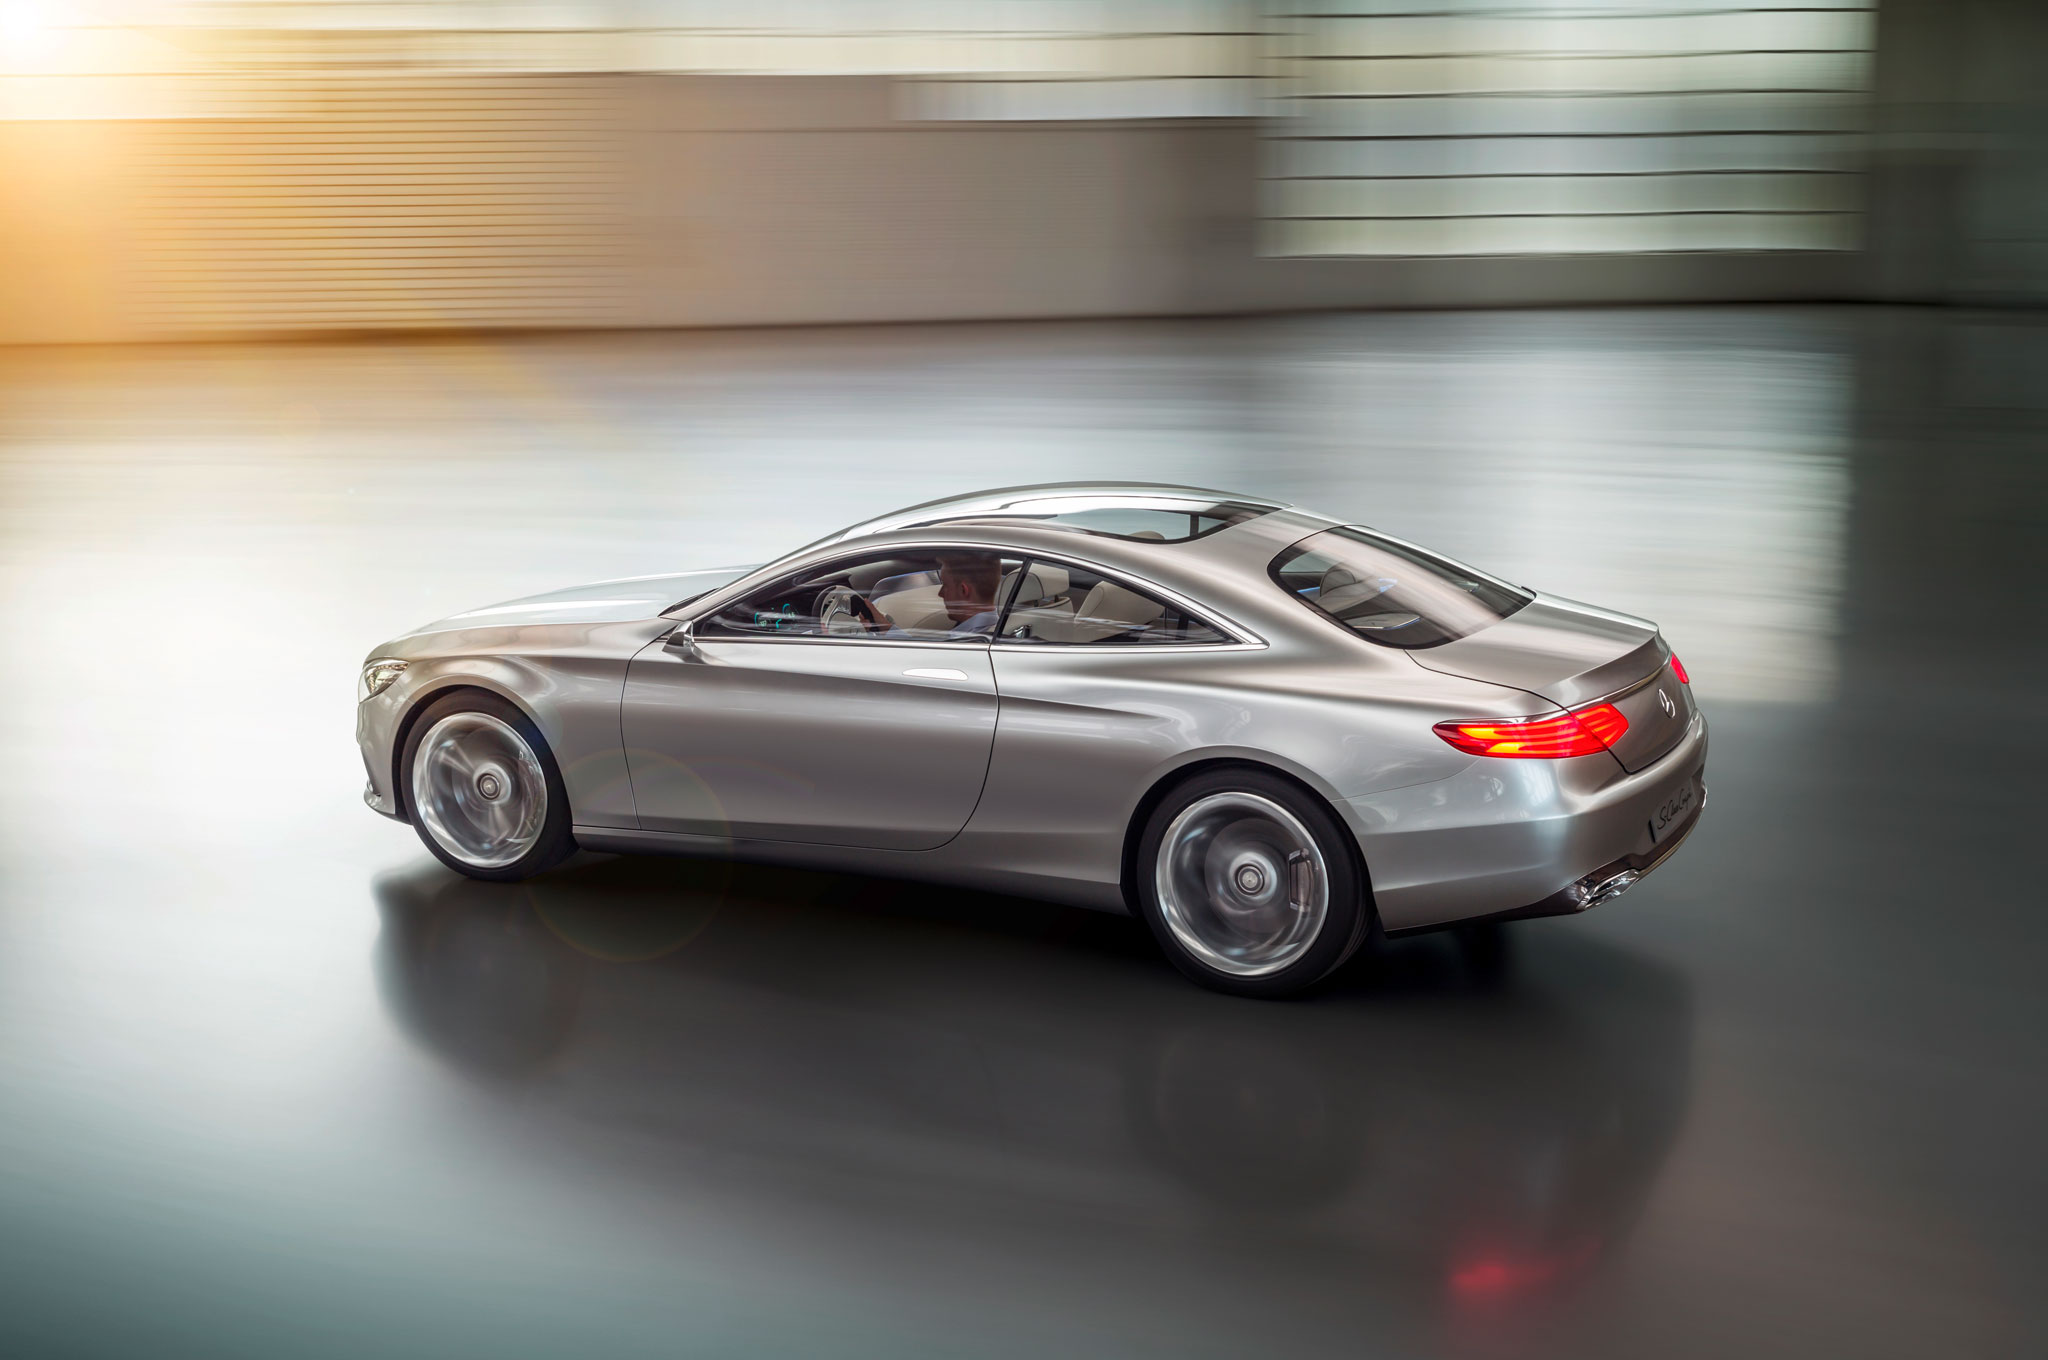 how to show song lyrics on mercedes c class